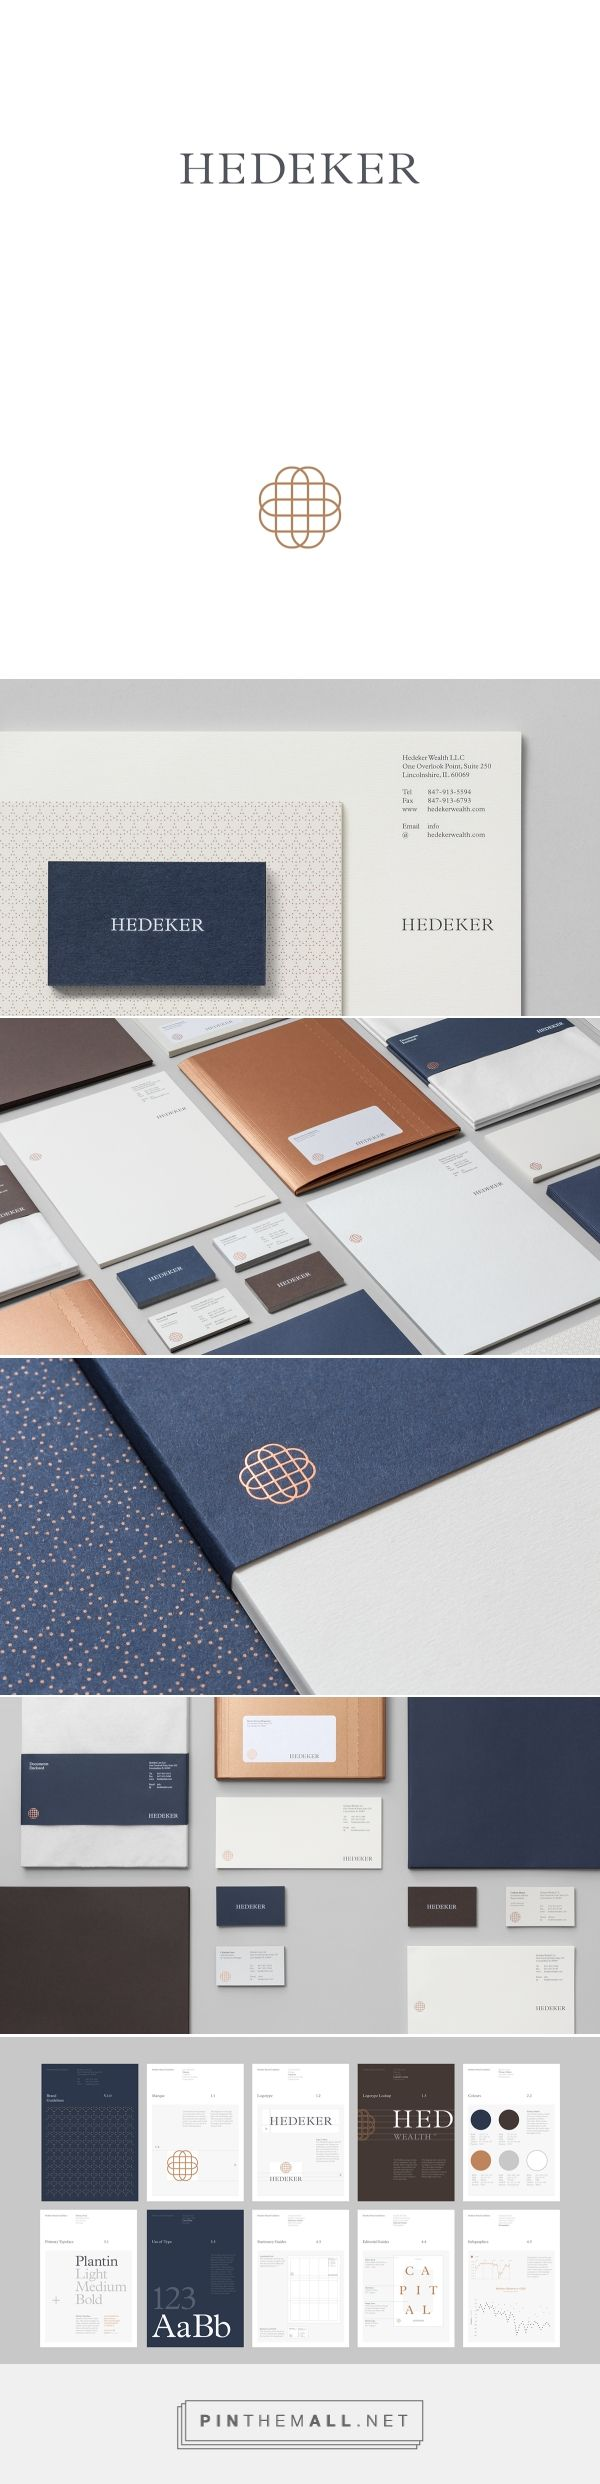 Hedeker Wealth & Law on Behance - created on 2016-09-14 09:14:59